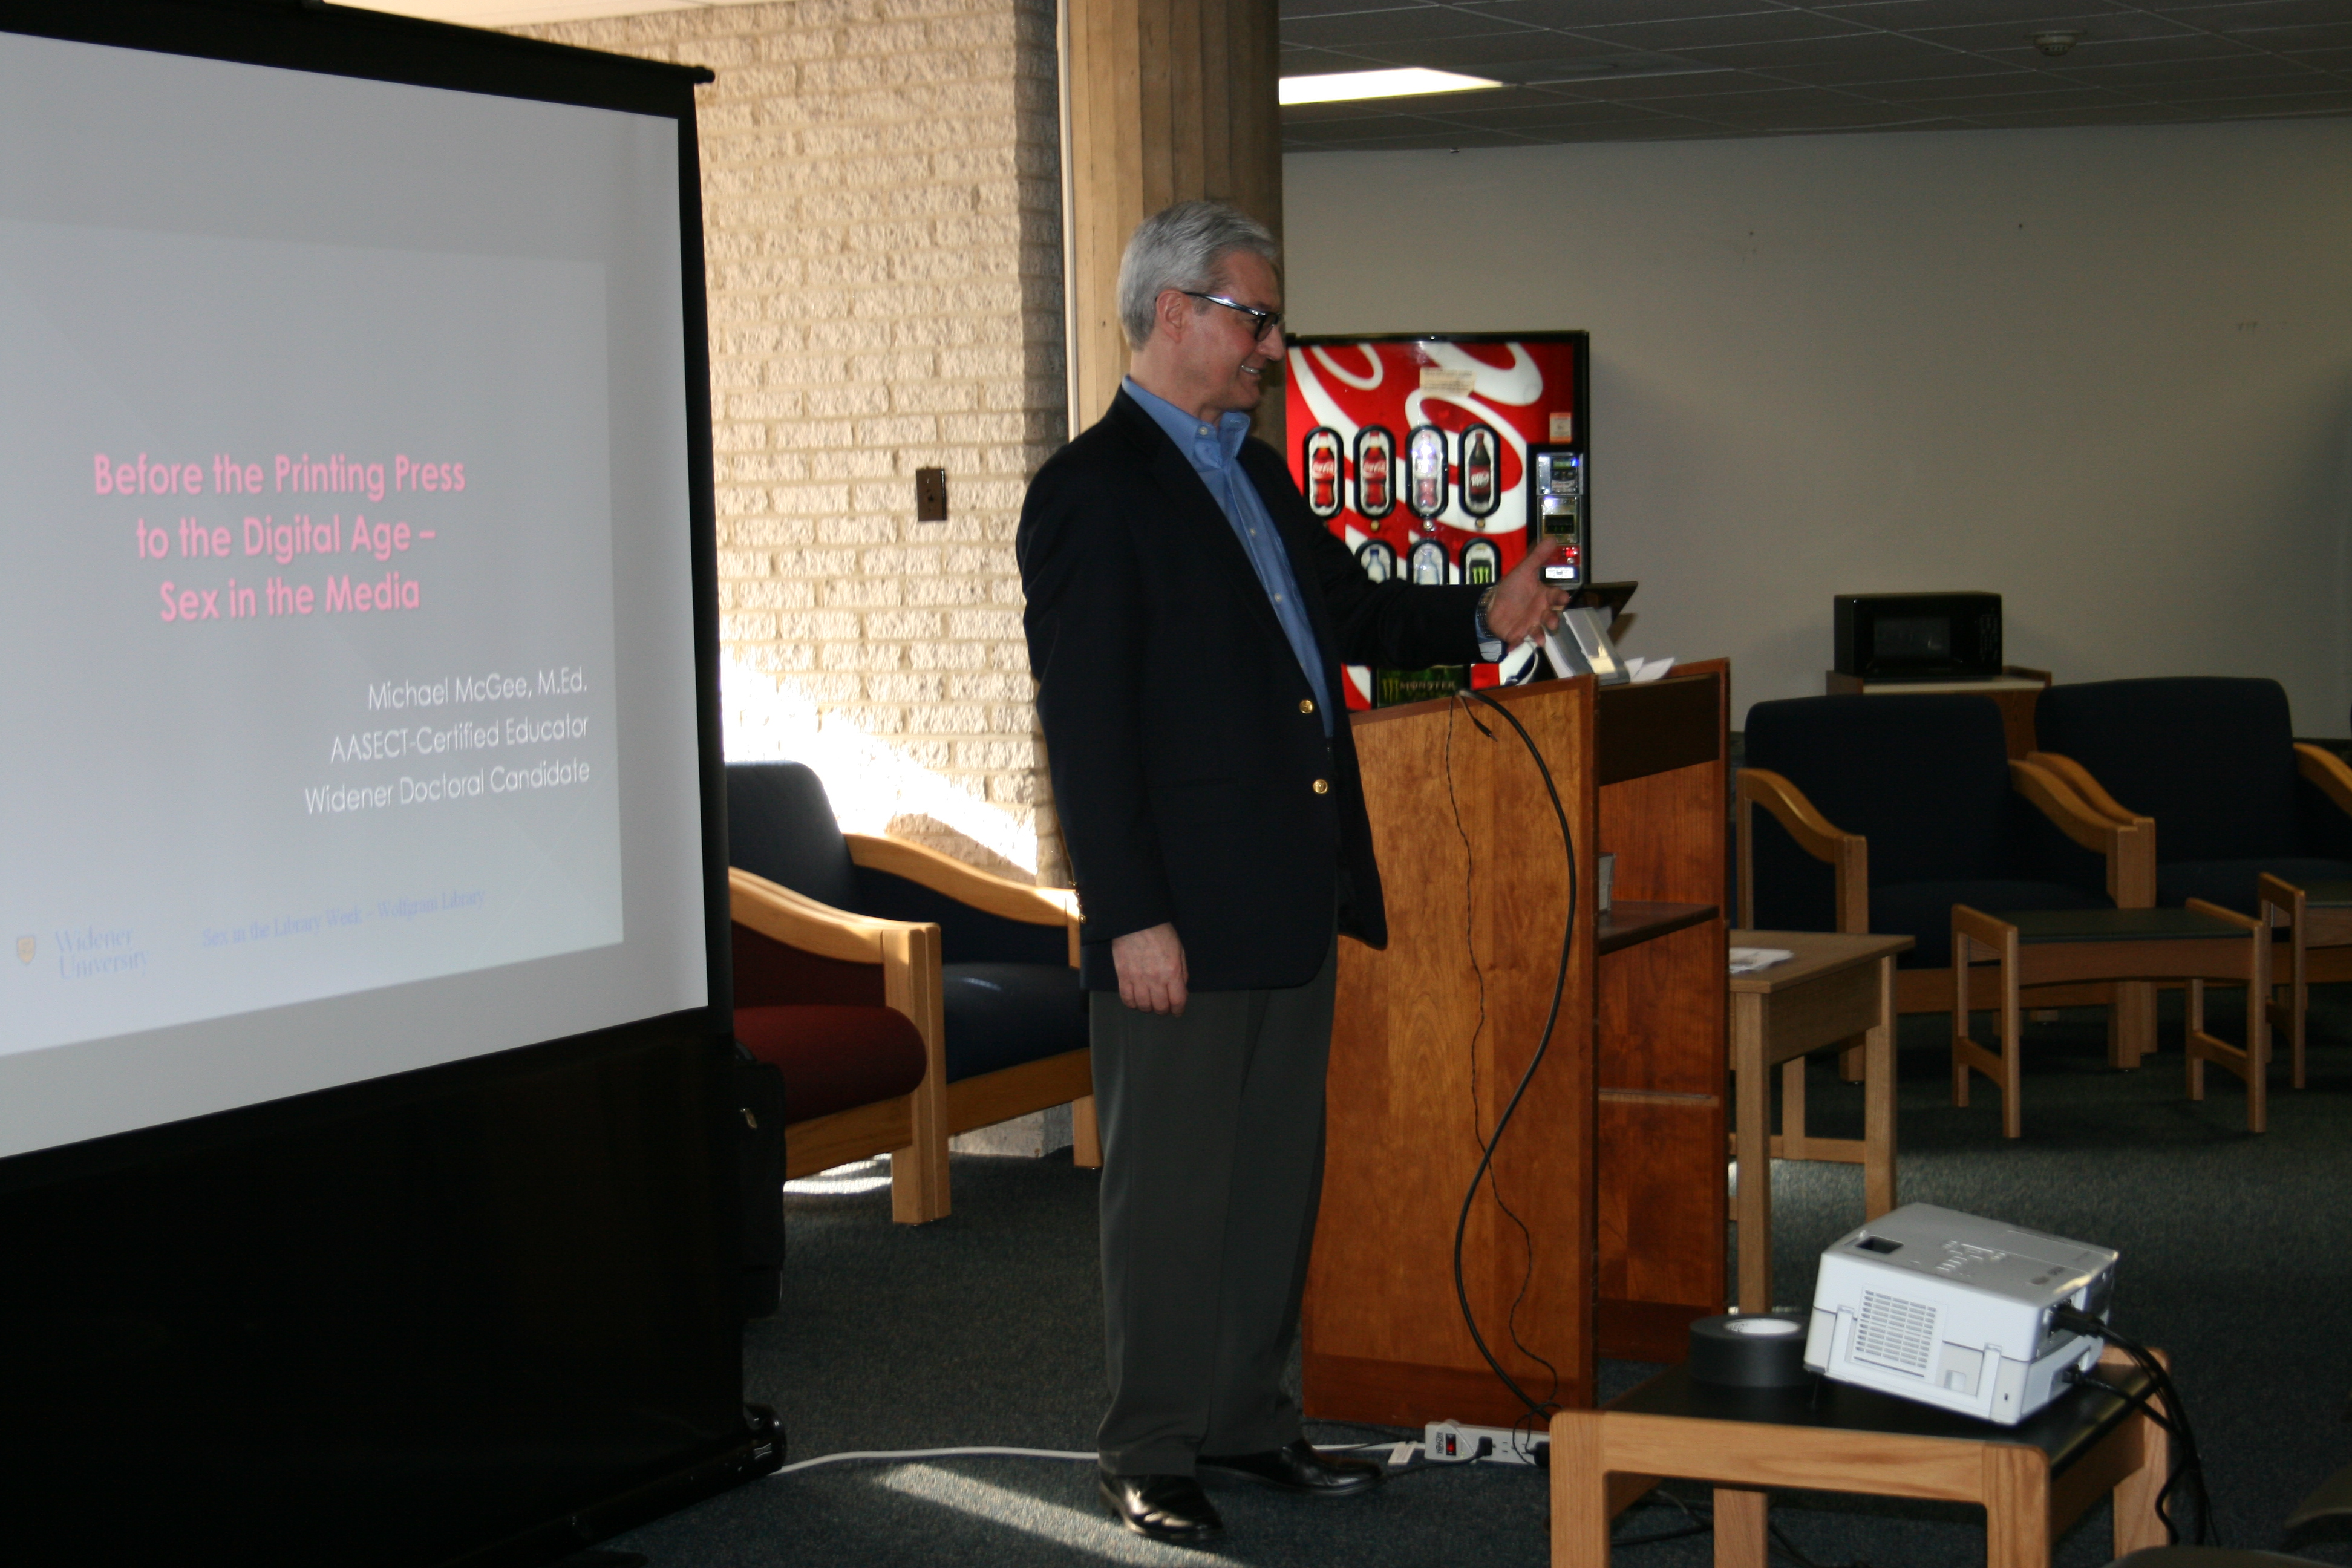 A white man in a suit standing next to a screen presenting information on sex in the media